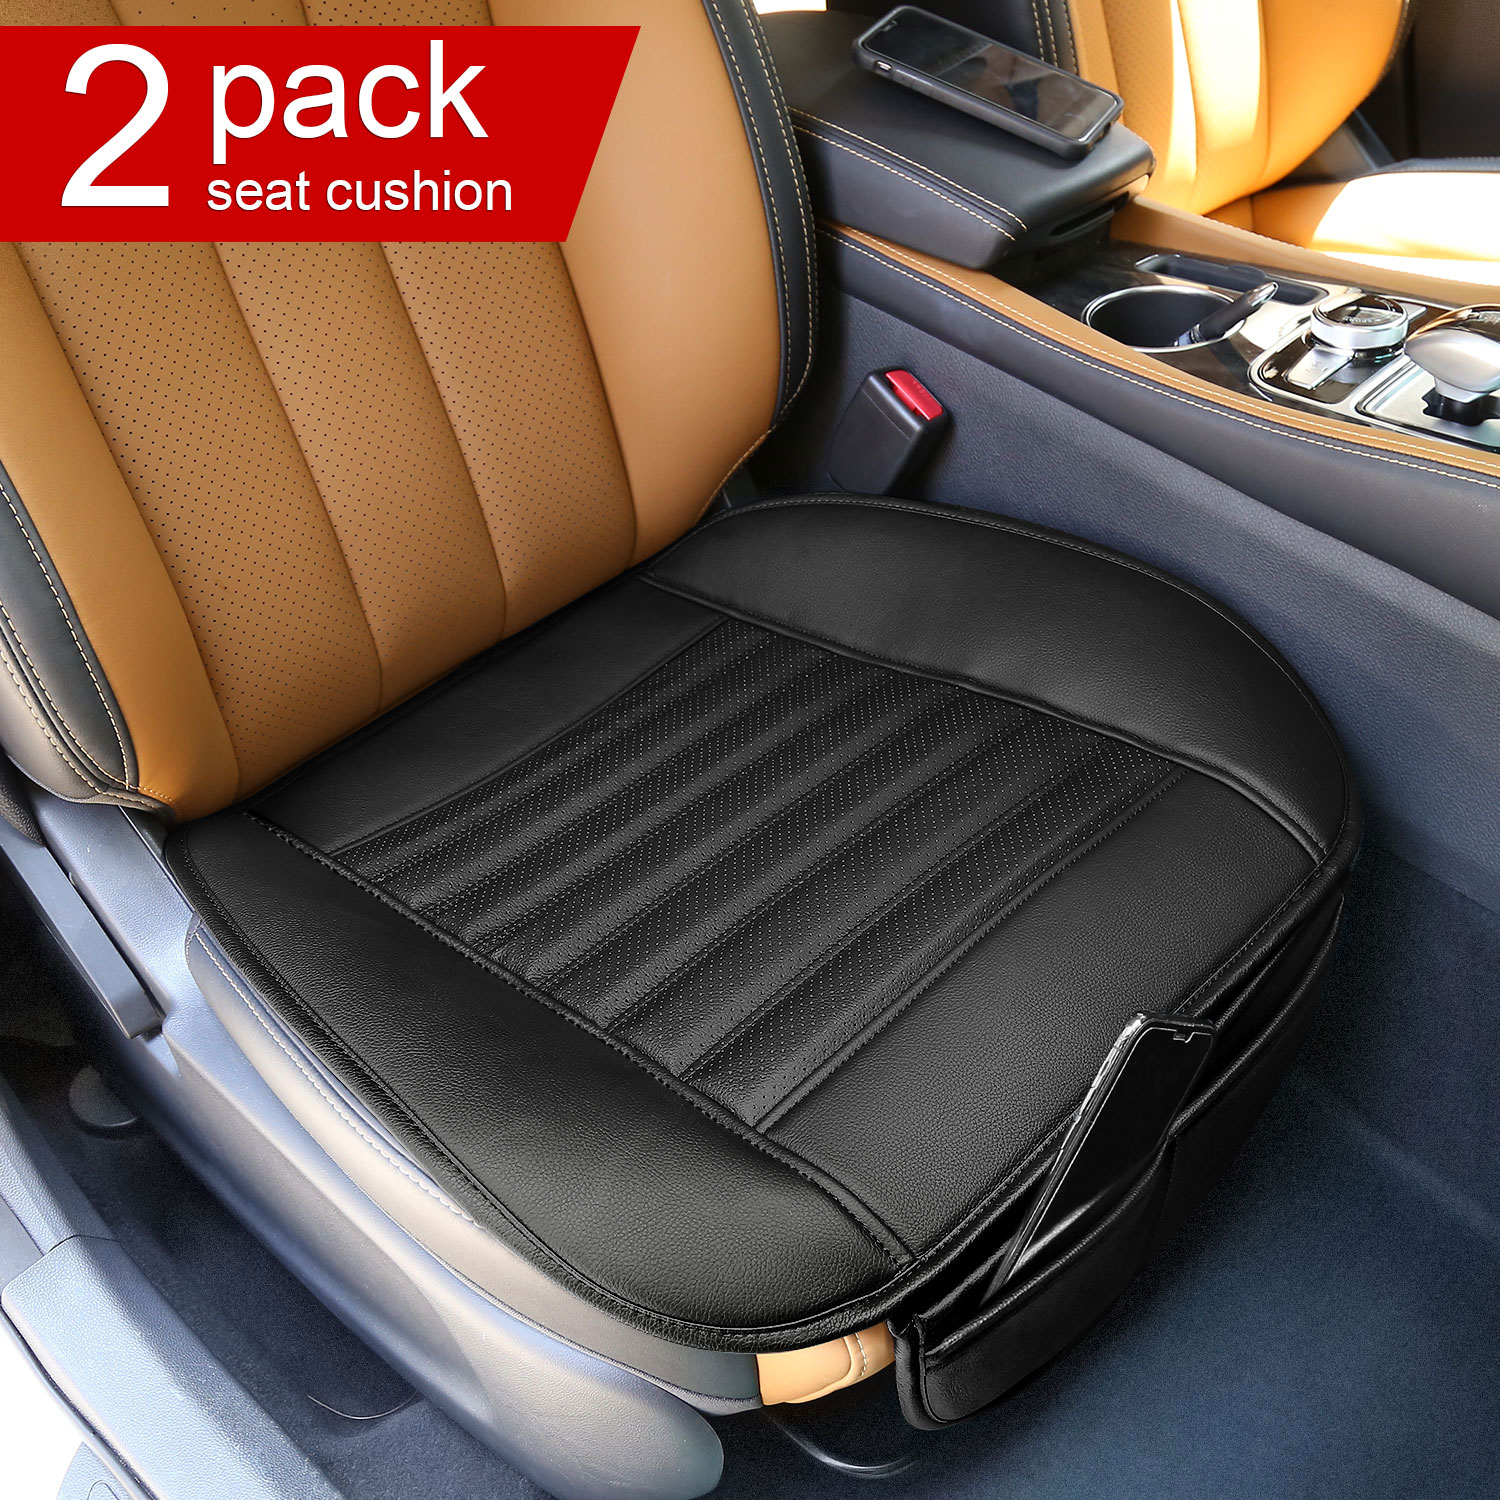 Modokit Set of 2 Car Interior Seat Cushions PU Leather Car Seat Protector Mat Pad Waterproof Breathable Seat Covers for Auto Supplies Office Chair(Black)